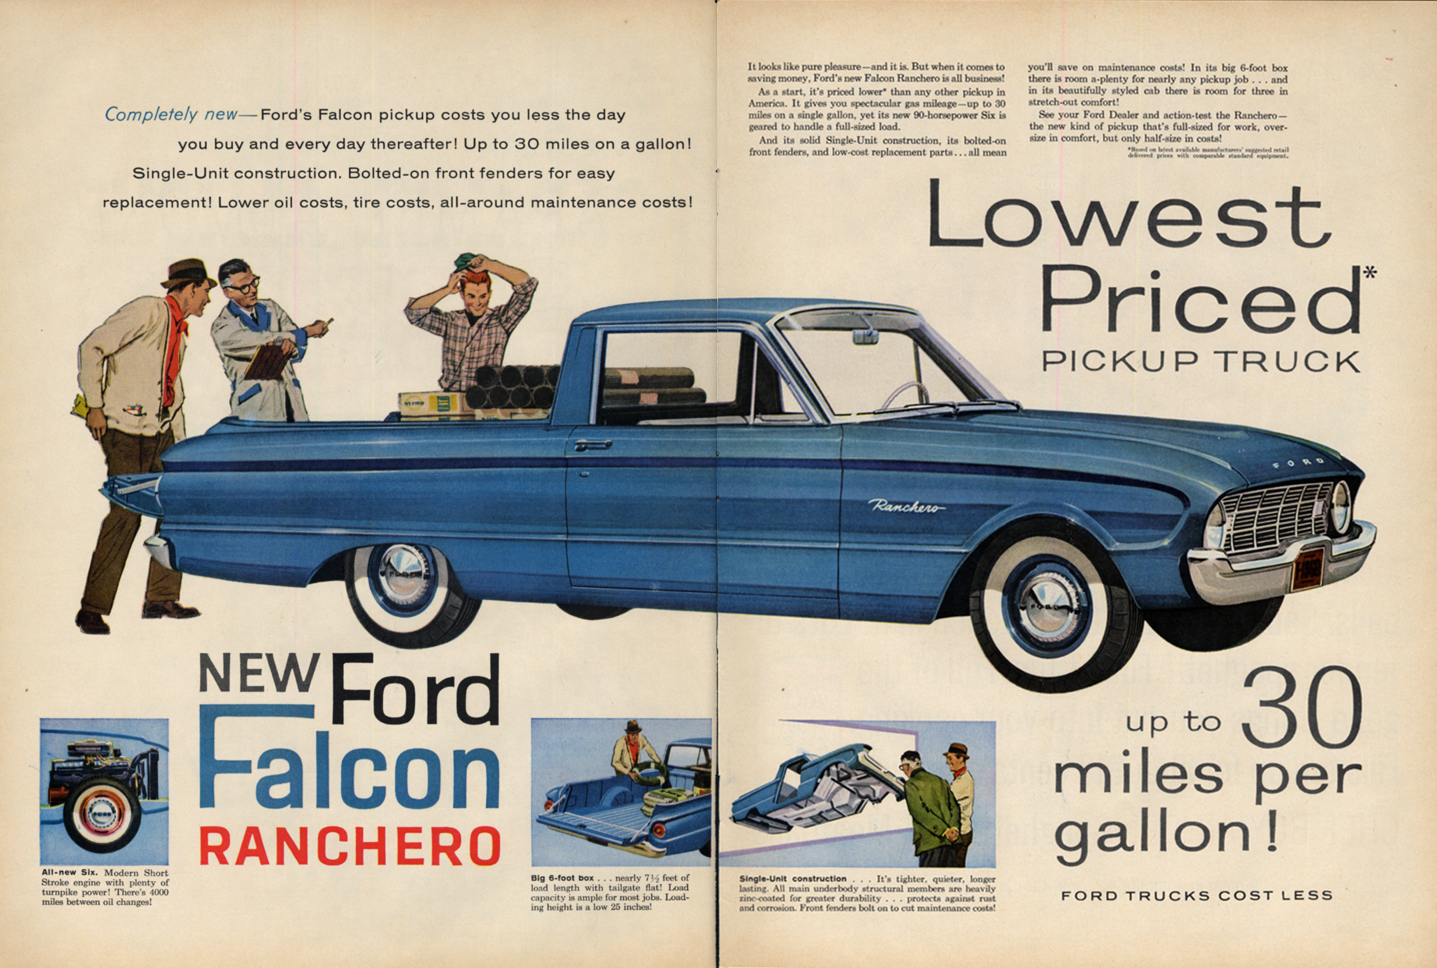 Image for Lowest priced pickup truck - Ford Falcon Ranchero ad 4/ 1960 L